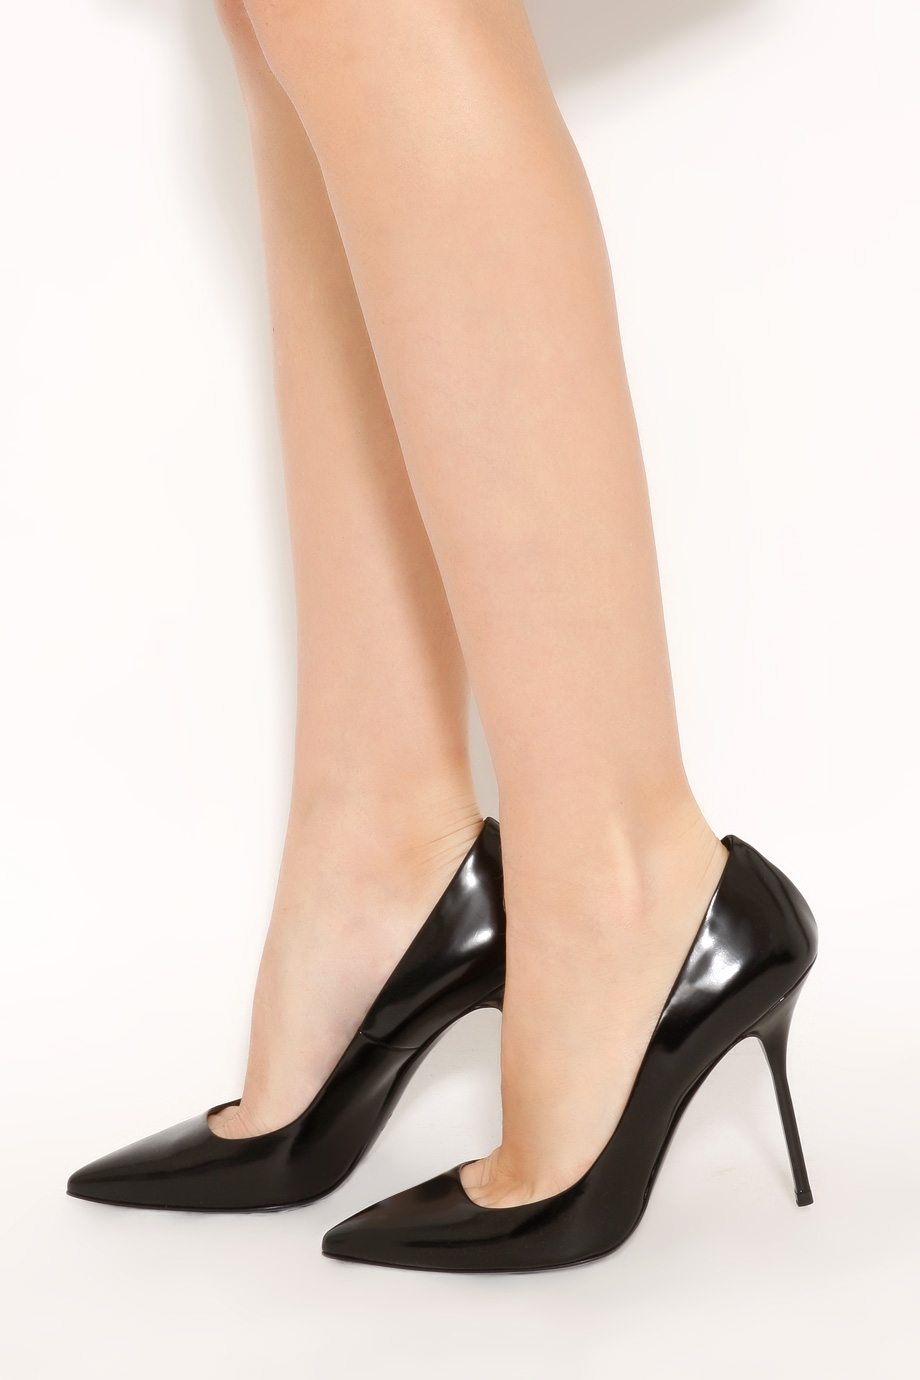 Lyst - Pierre hardy Shiny Calf Pointed High Heels in Black